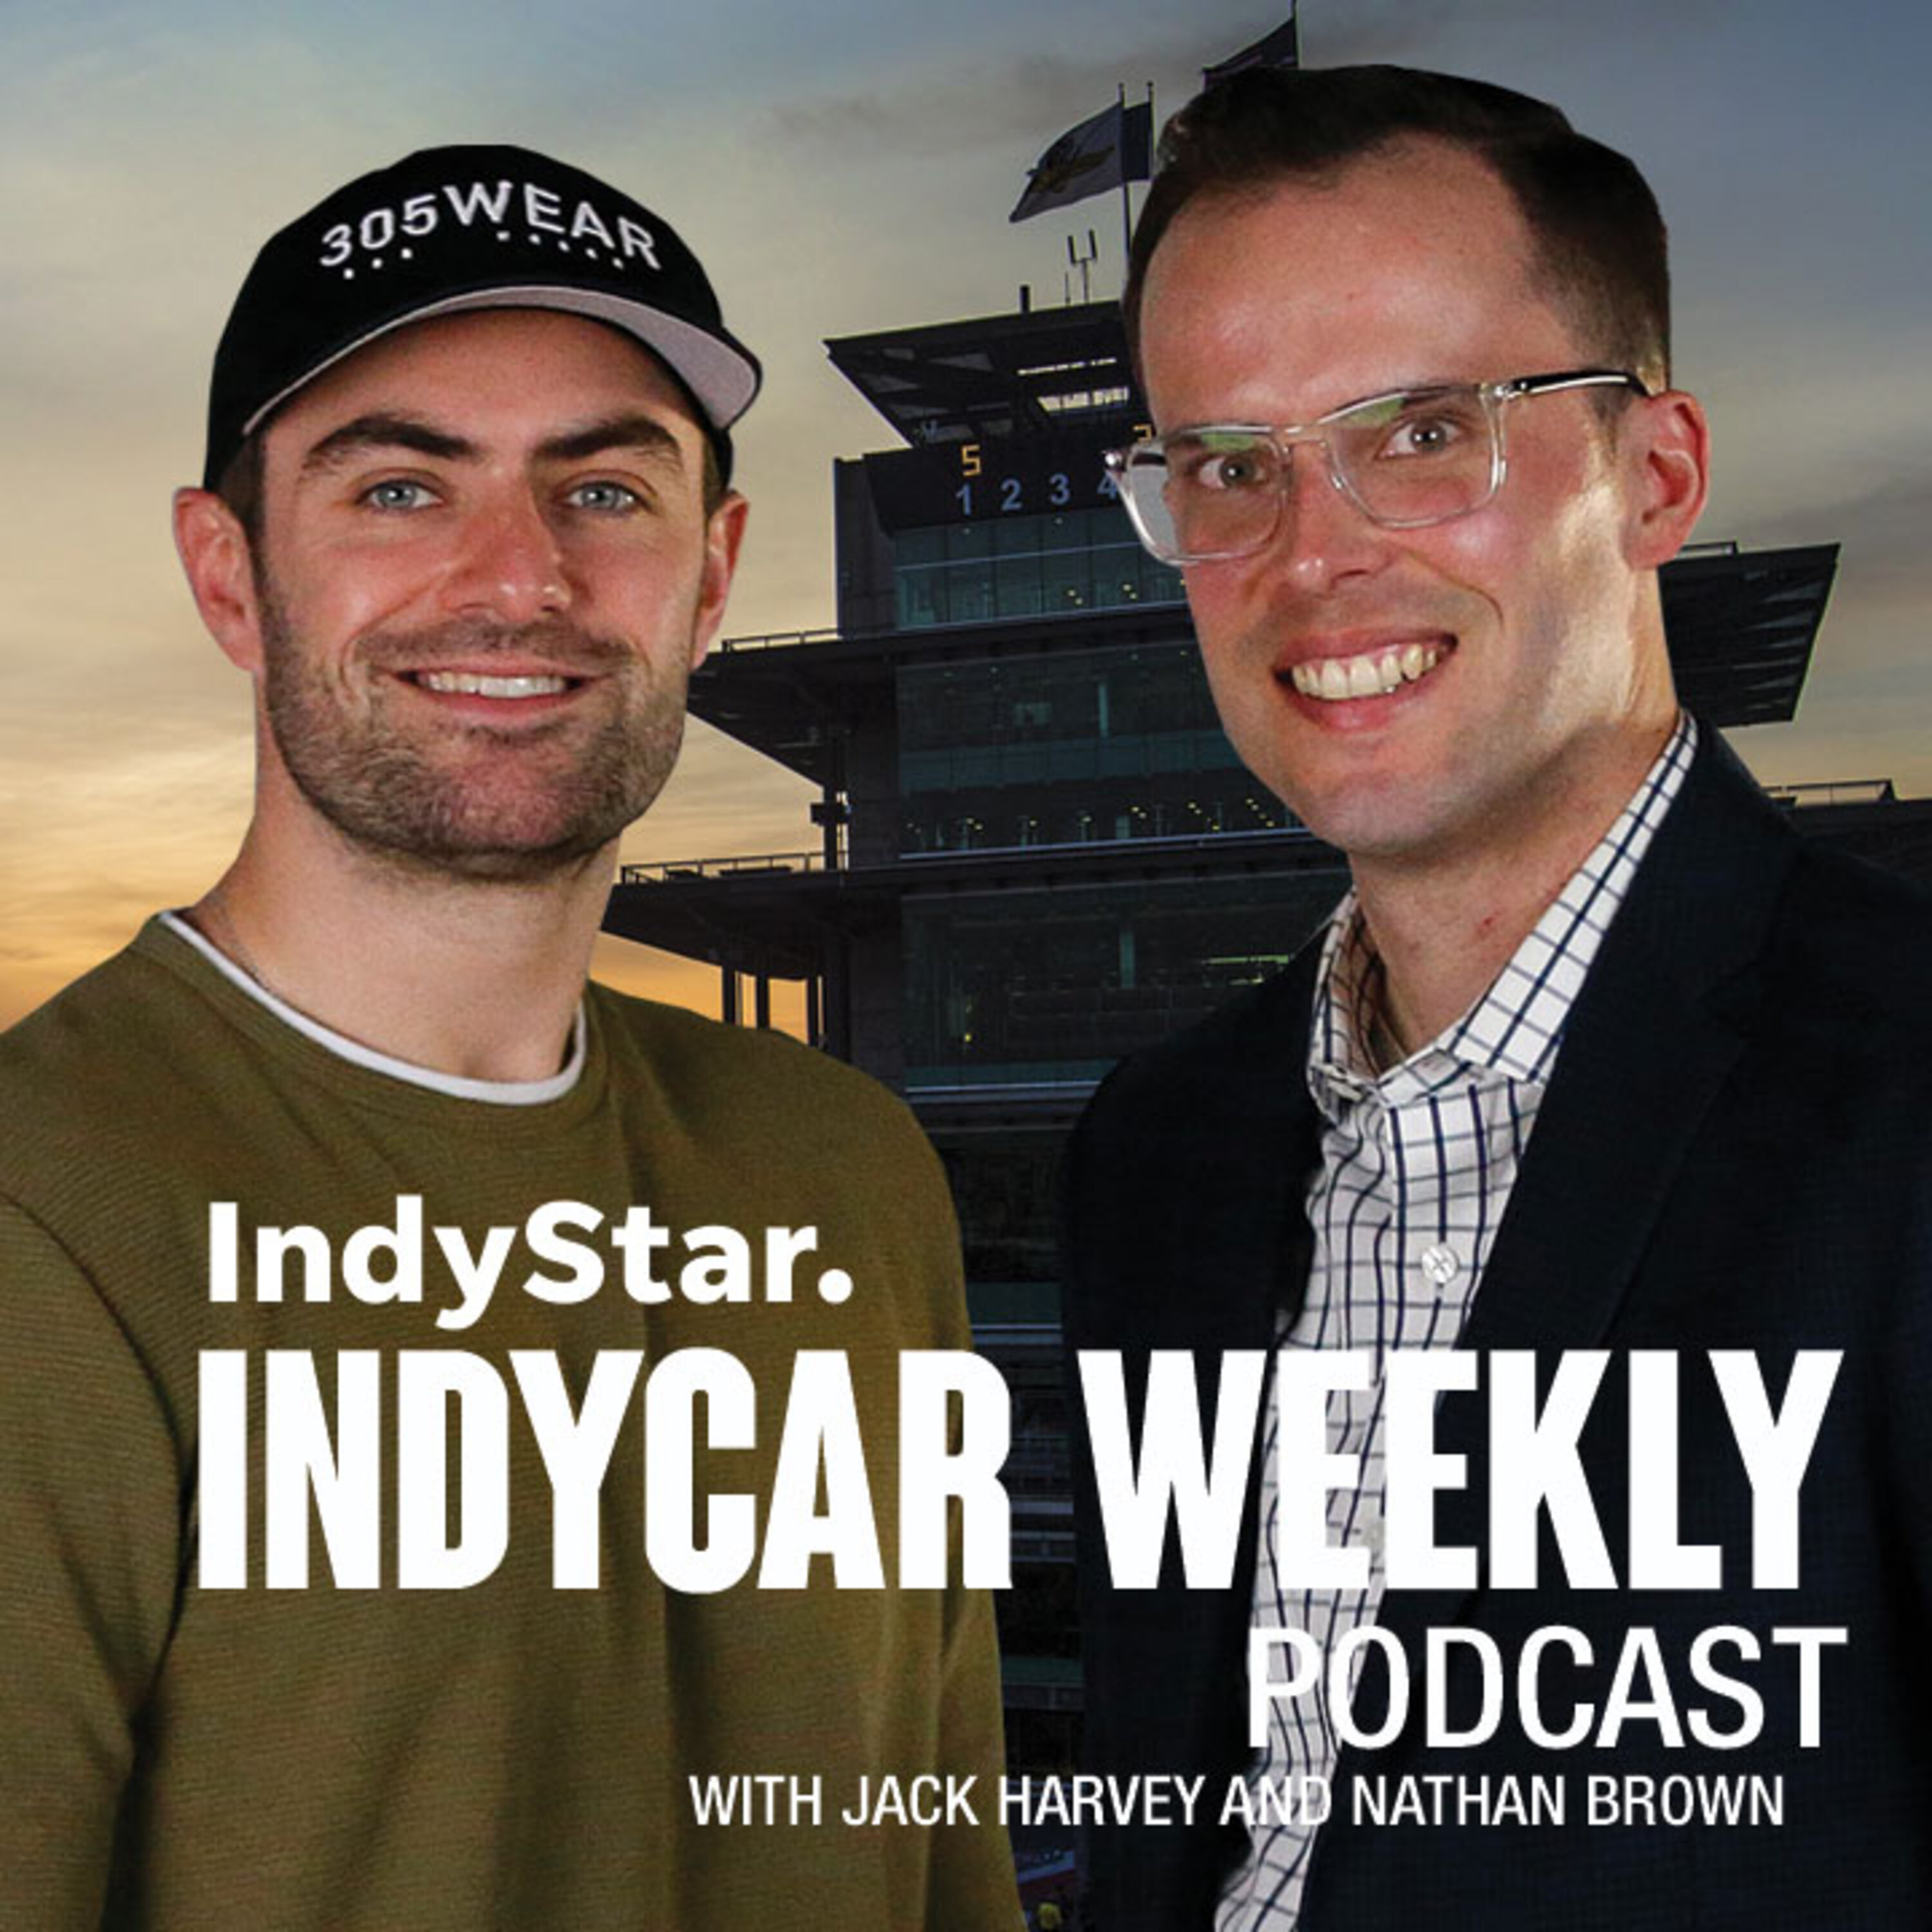 IndyCar Weekly with Jack Harvey: Jack and Nathan preview the Indy 500